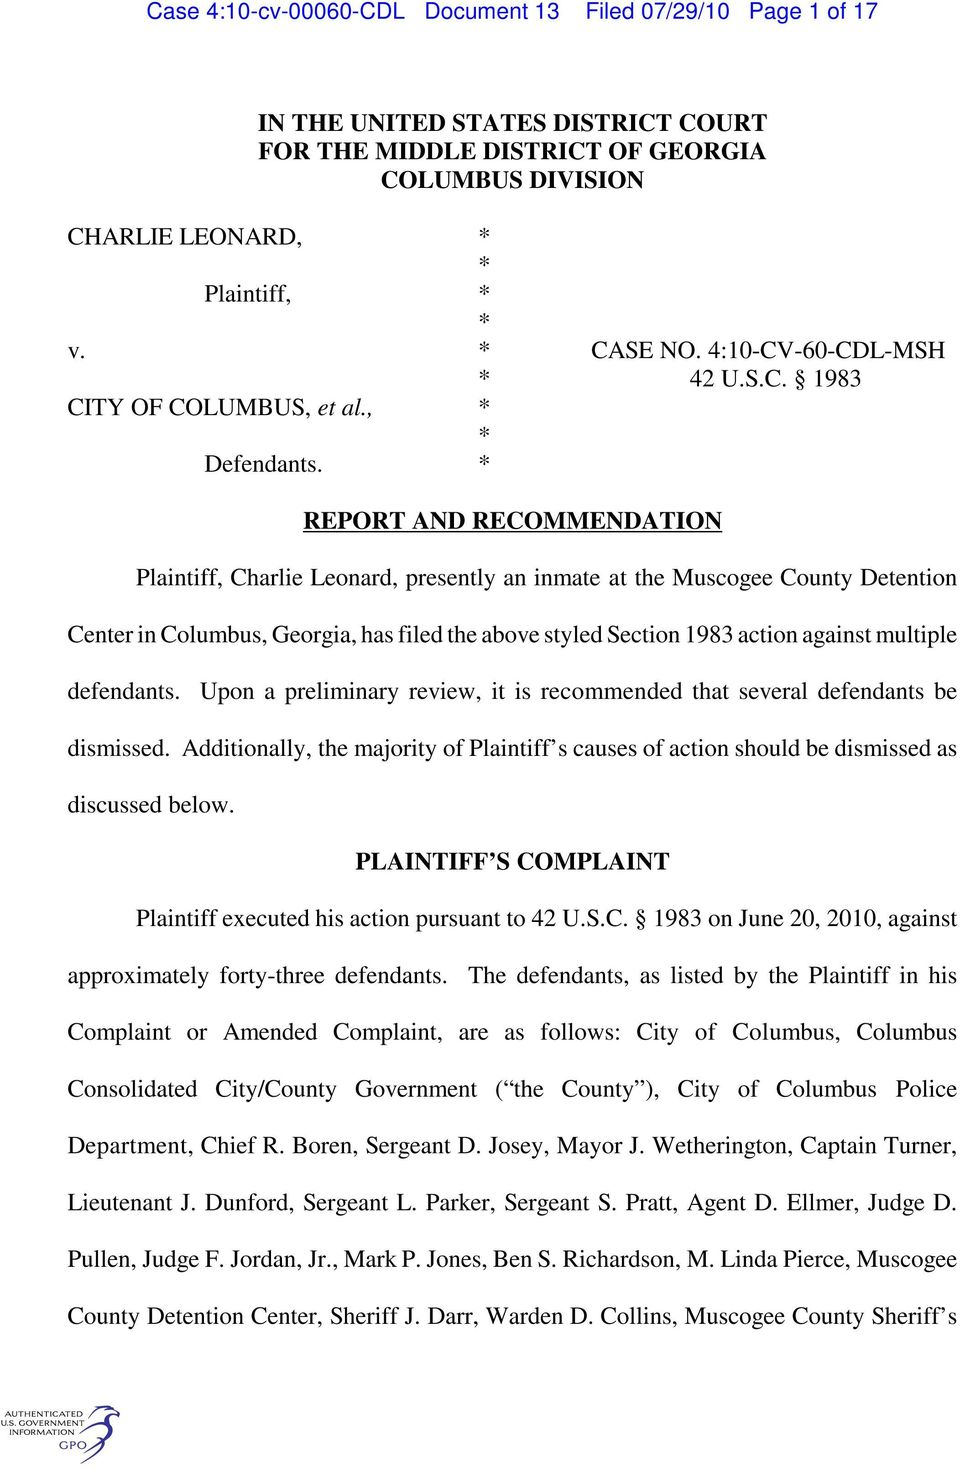 * REPORT AND RECOMMENDATION Plaintiff, Charlie Leonard, presently an inmate at the Muscogee County Detention Center in Columbus, Georgia, has filed the above styled Section 1983 action against